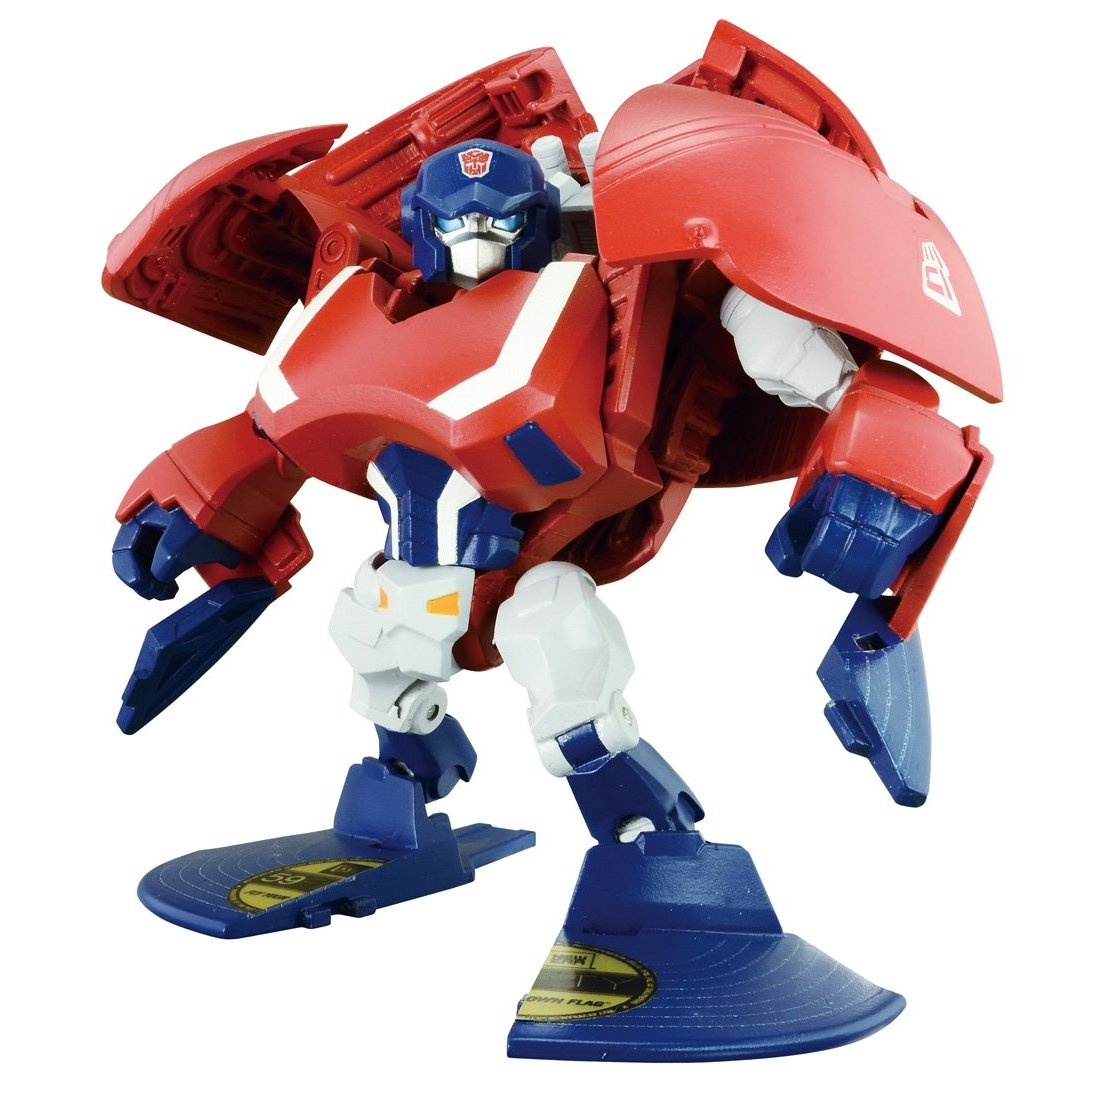 Japanese Transformers Toys : Japanese transformers toys page tfw